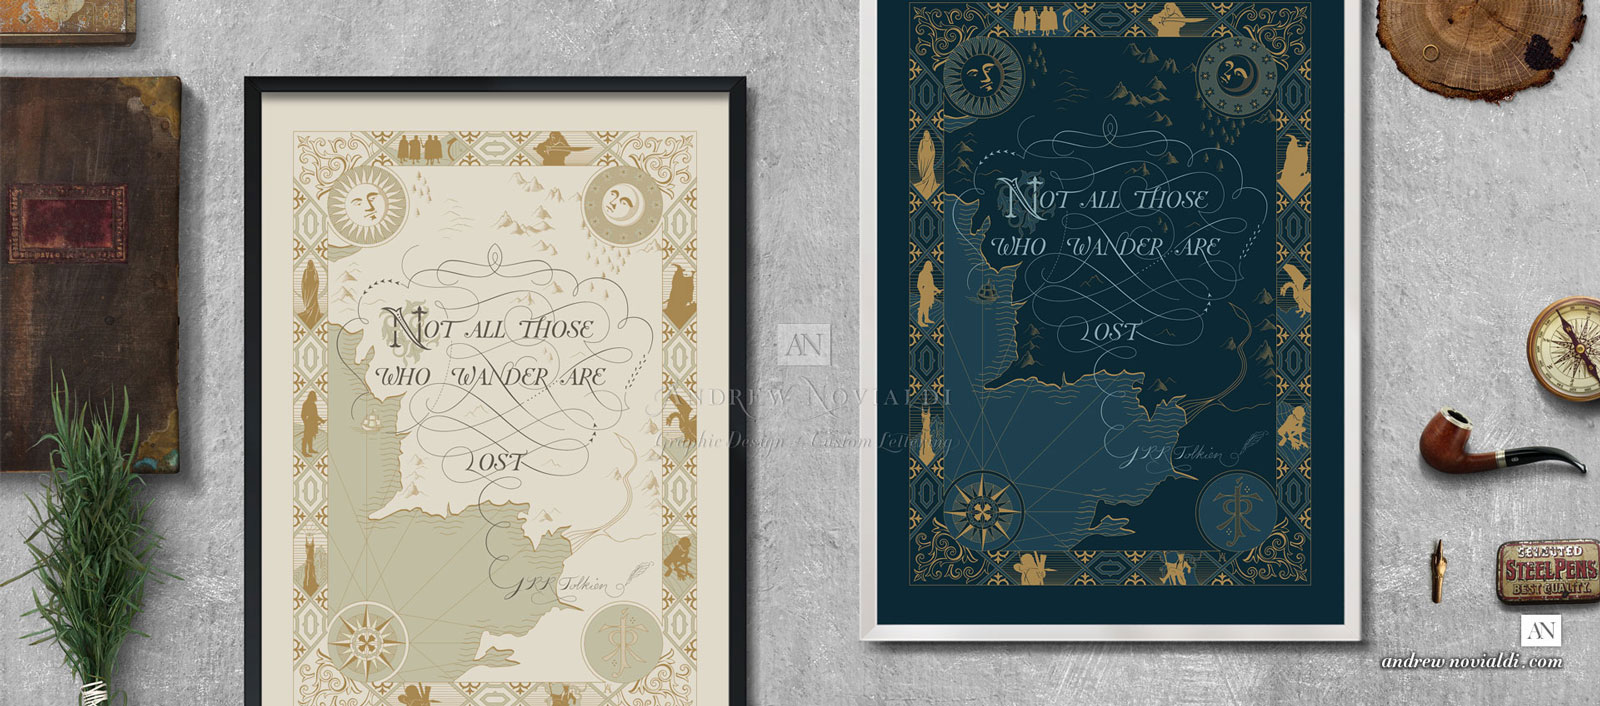 Middle Earth Design Comes in Two Color Variations: Ivory Parchment and Imperial Blue